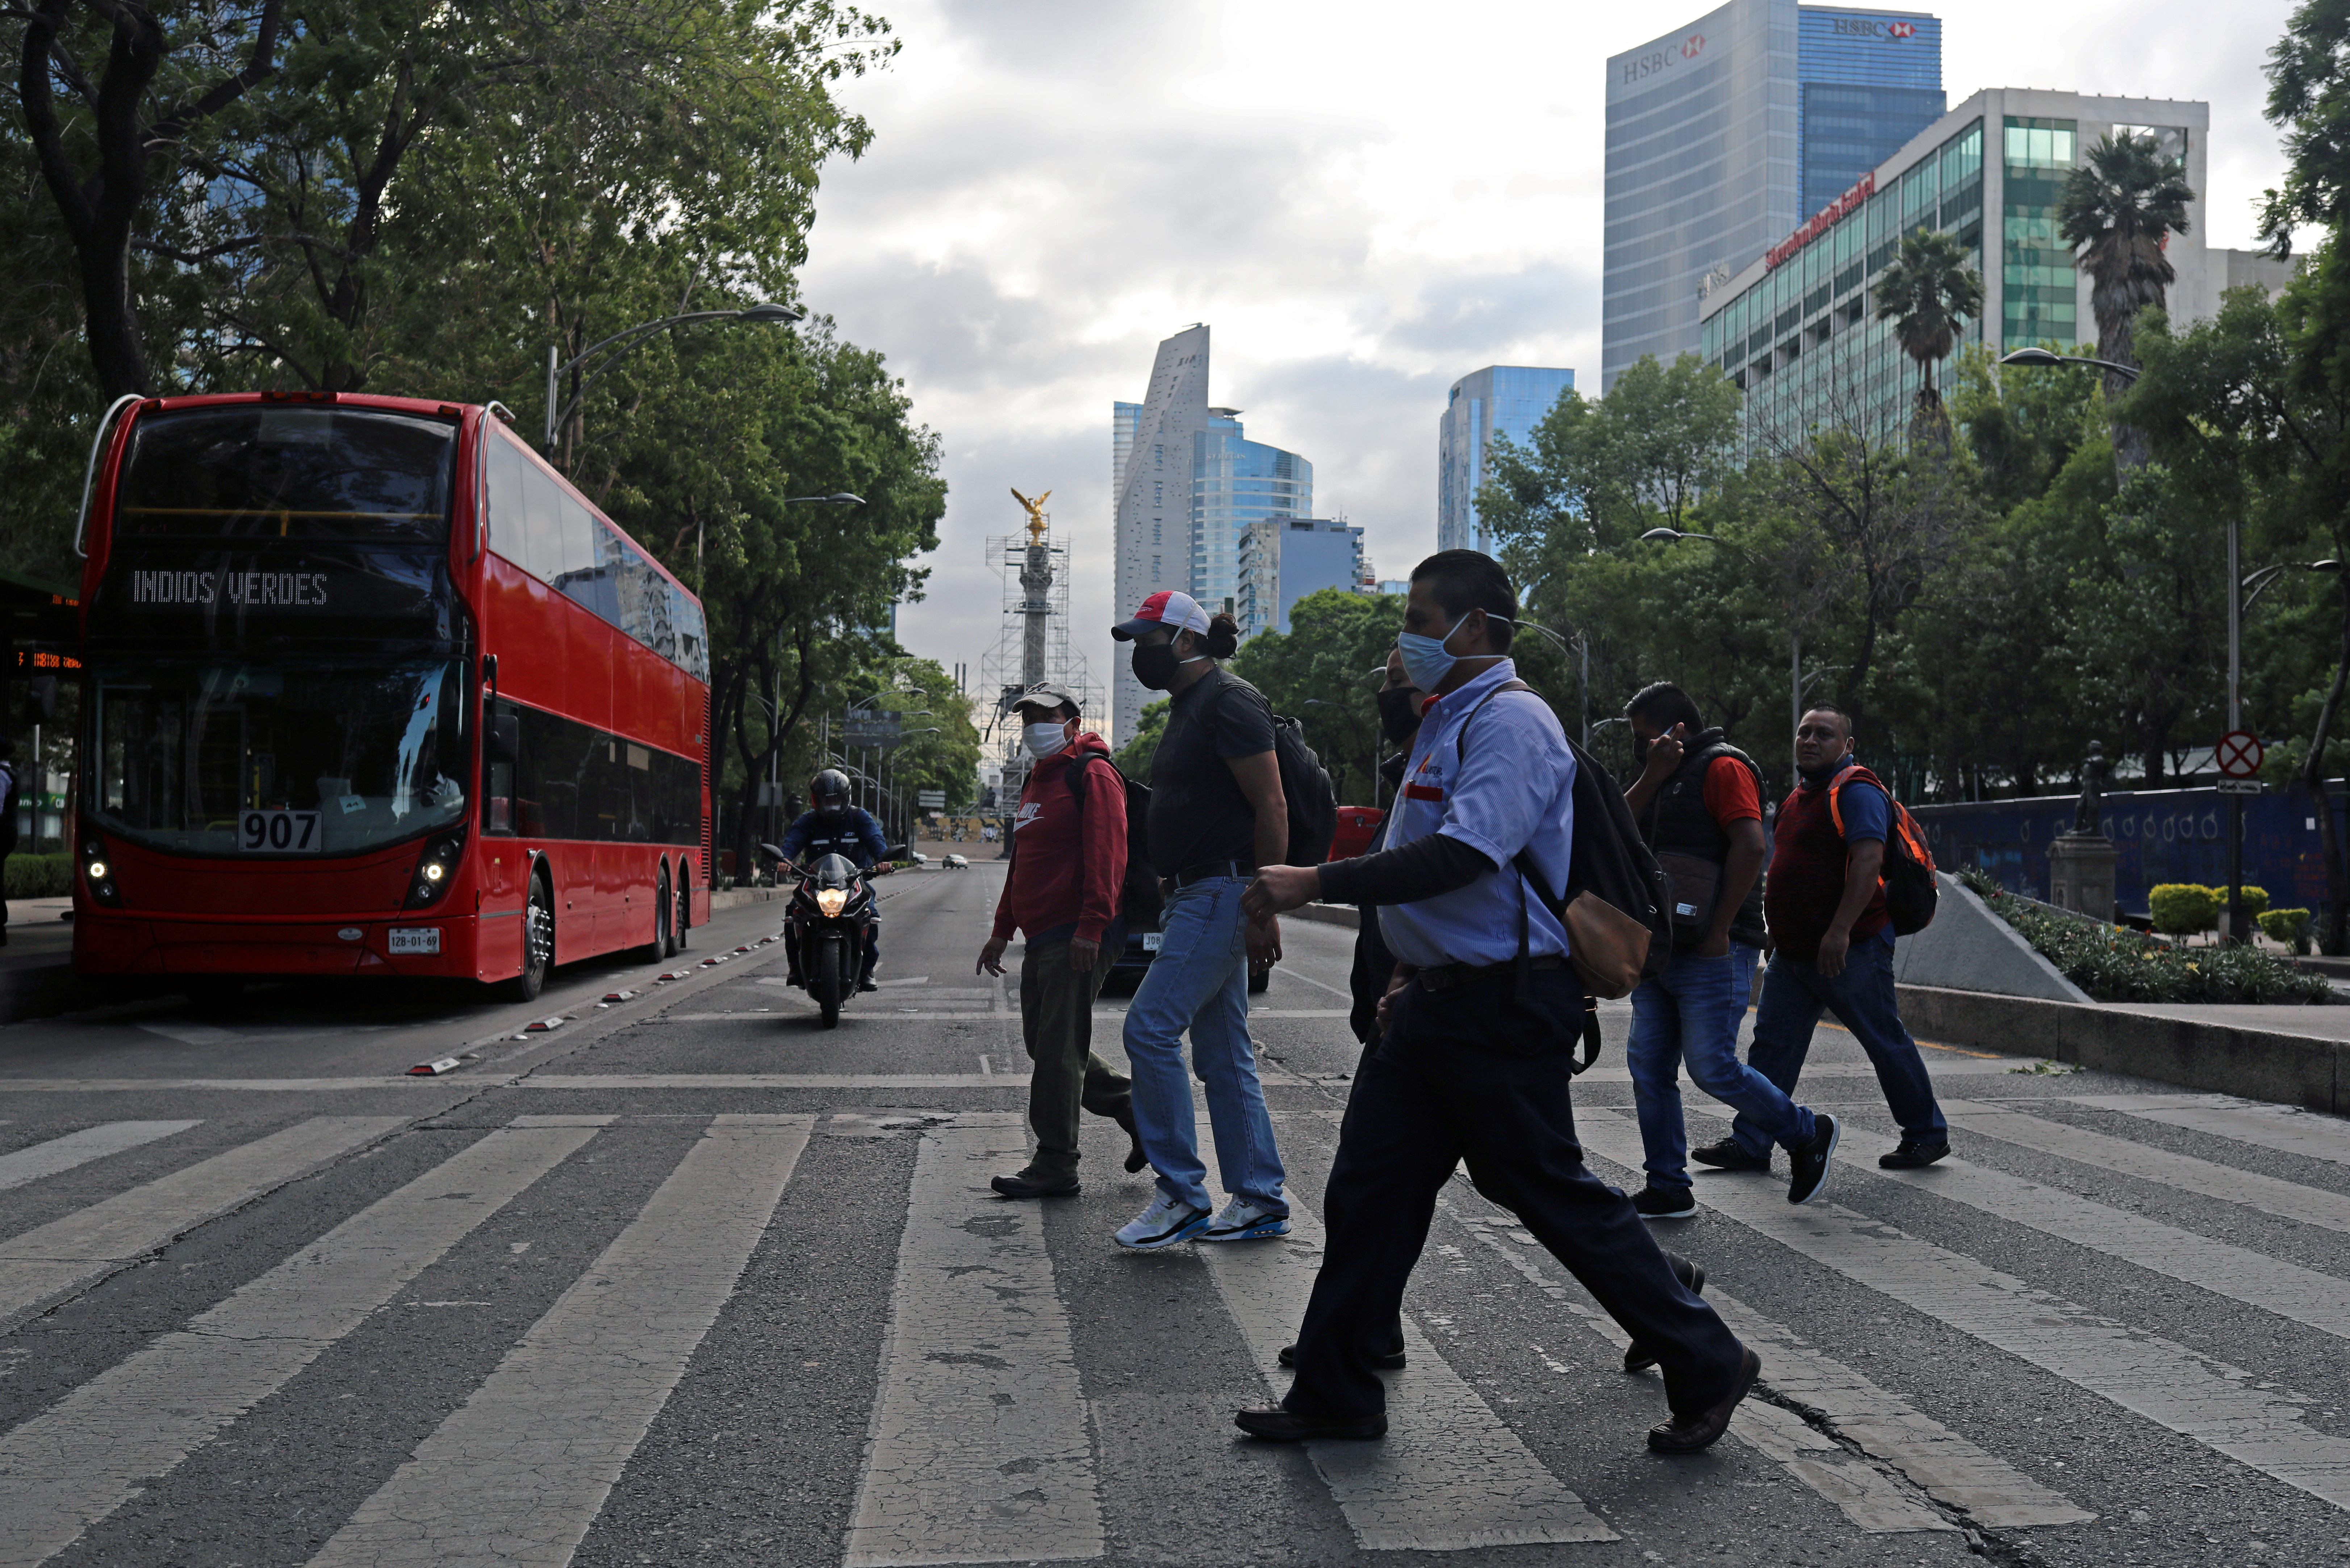 People cross Reforma Avenue as the mayor of Mexico City said on Friday that the Mexican capital will lift restrictions on car traffic and public transport next week, allowing 340,000 factory workers to get back to work, even though new cases of coronavirus disease (COVID-19) are still rising, in Mexico City, Mexico June 12, 2020. REUTERS/Henry Romero